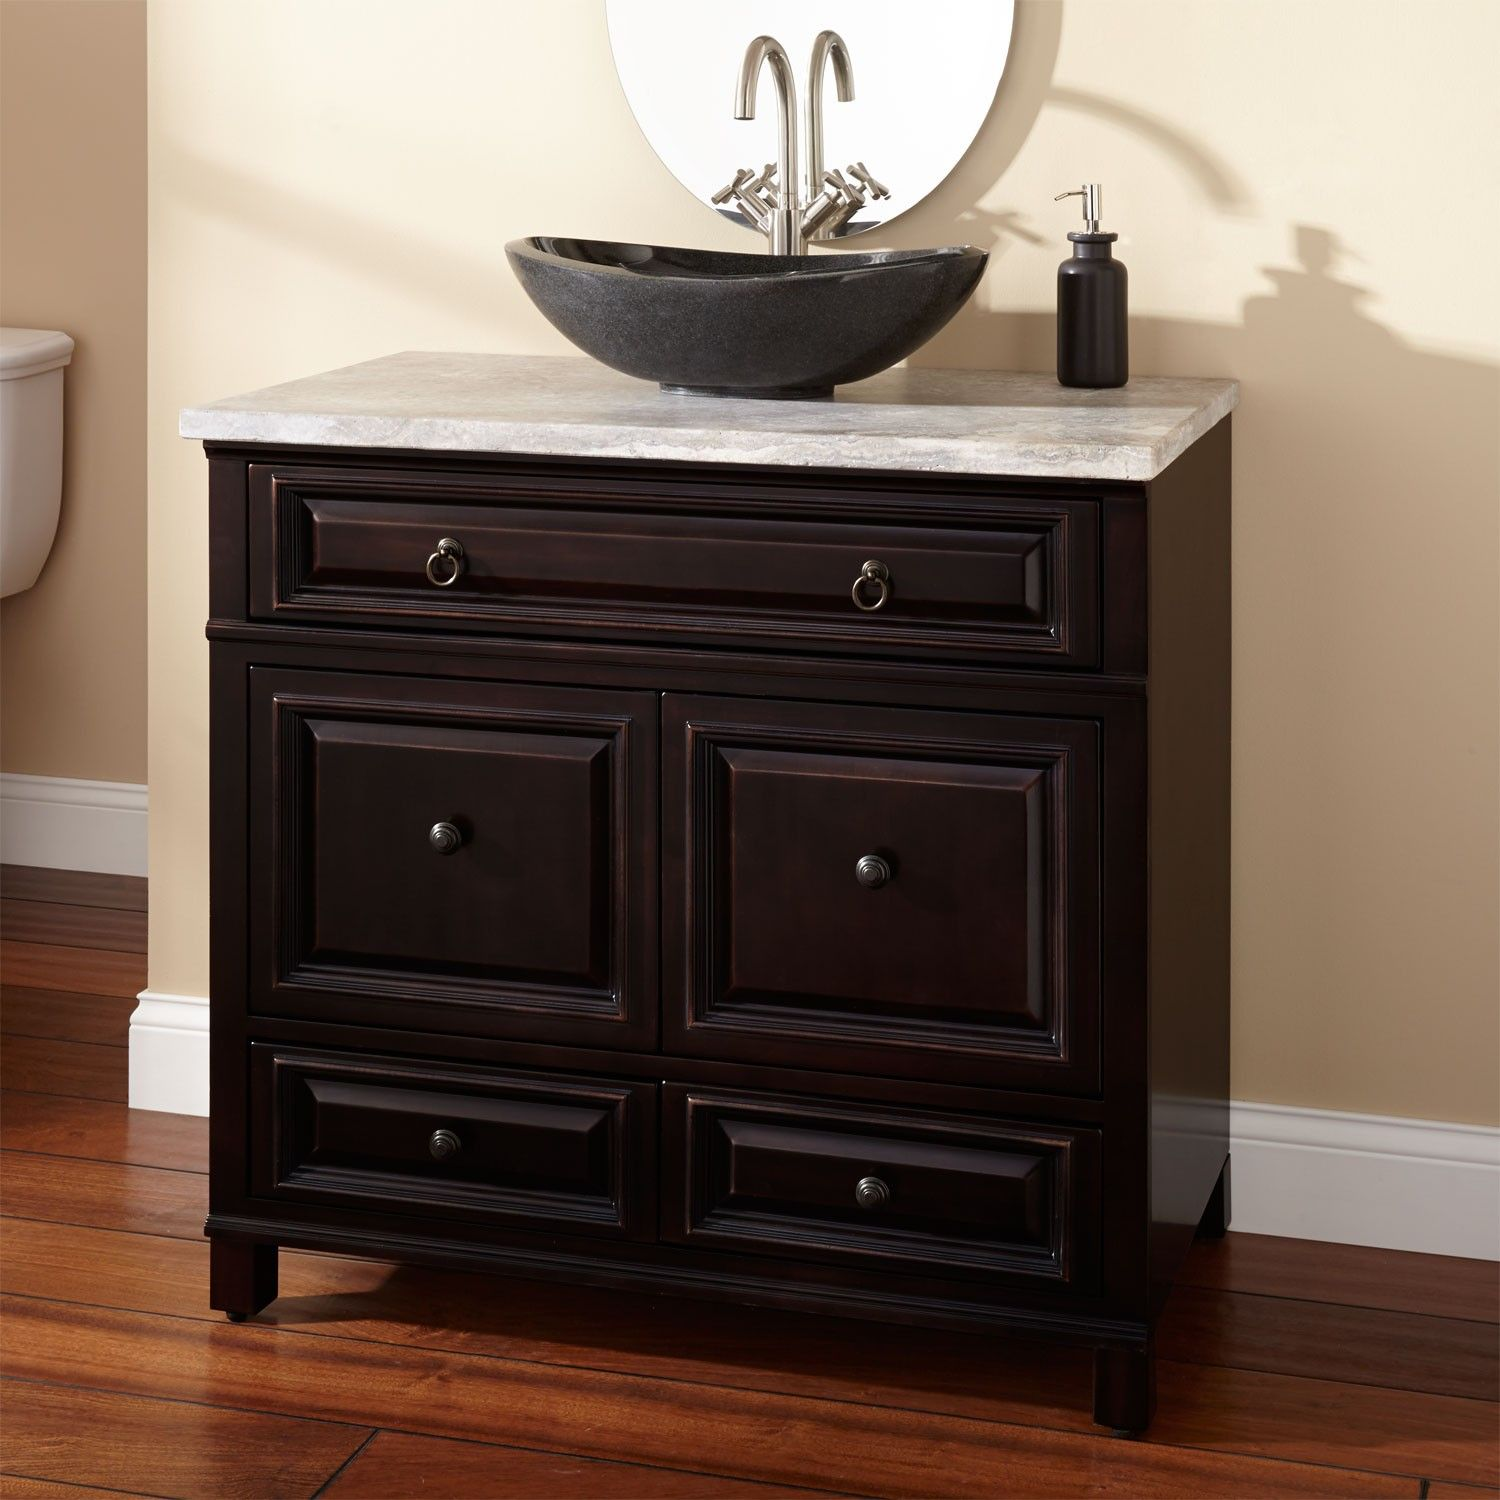 36 Orzoco Black Vessel Sink Vanity Bathroom Vanities Bathroom